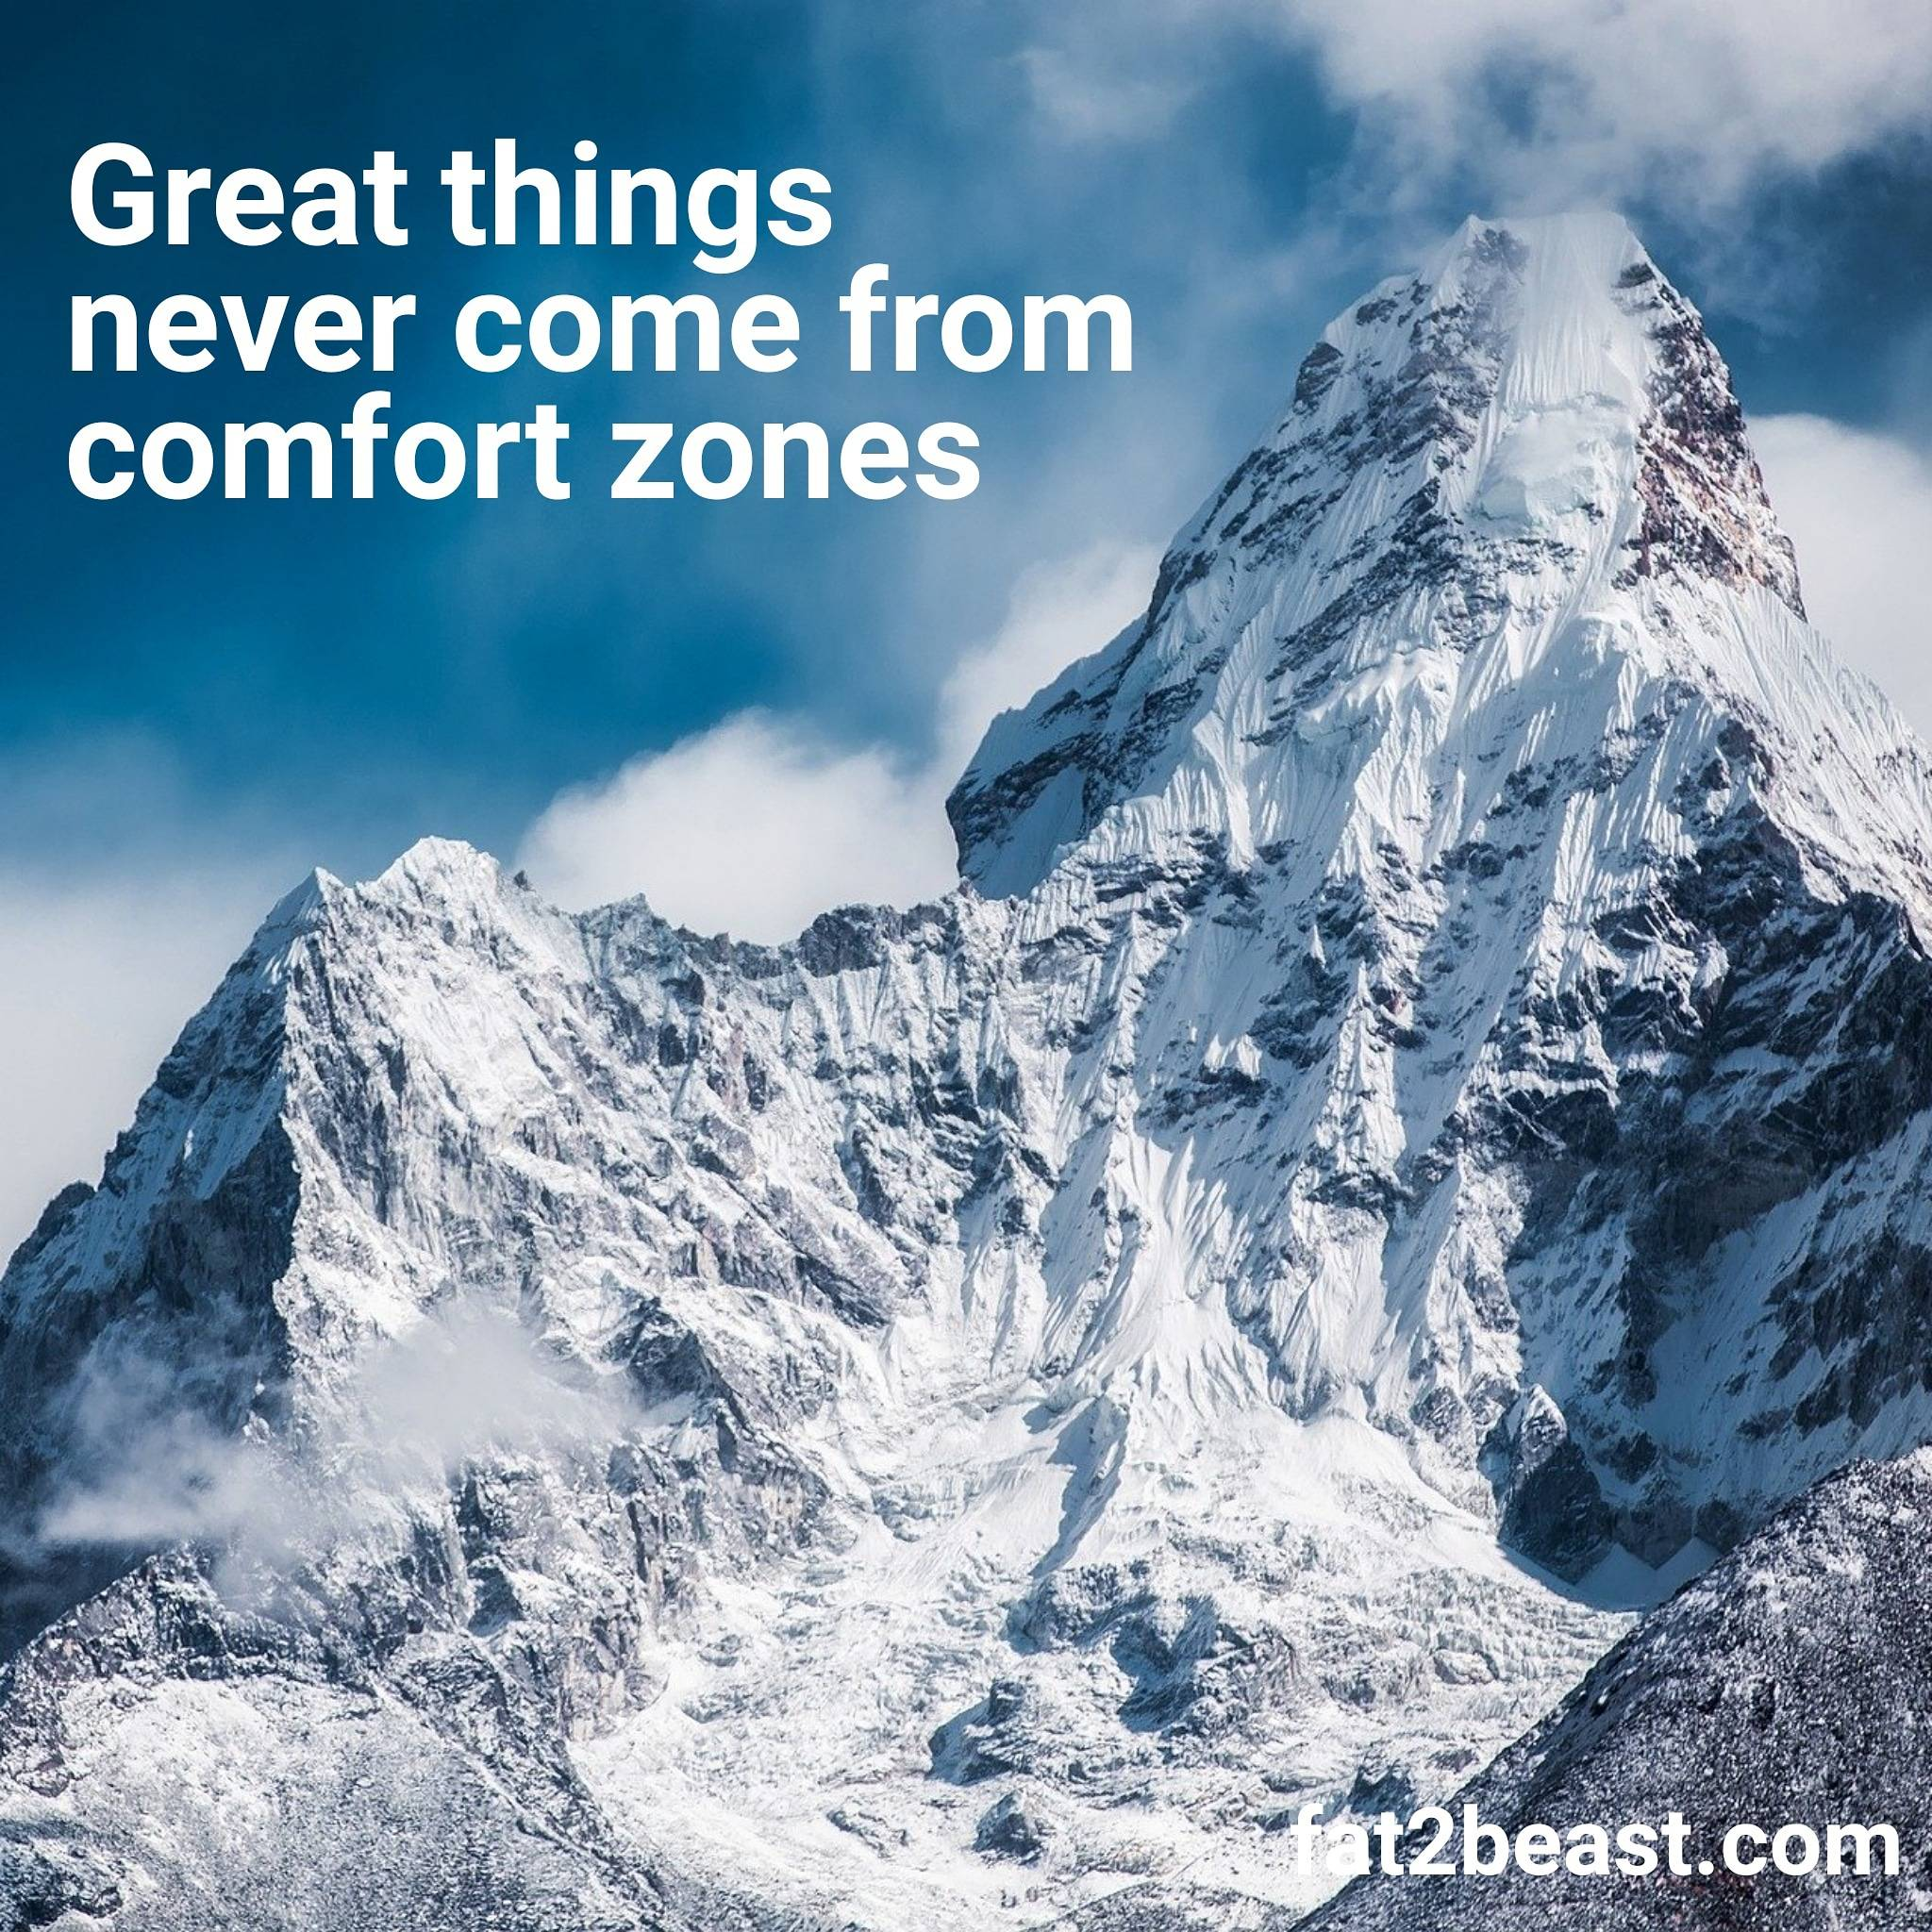 [IMAGE] Great things never come from comfort zones